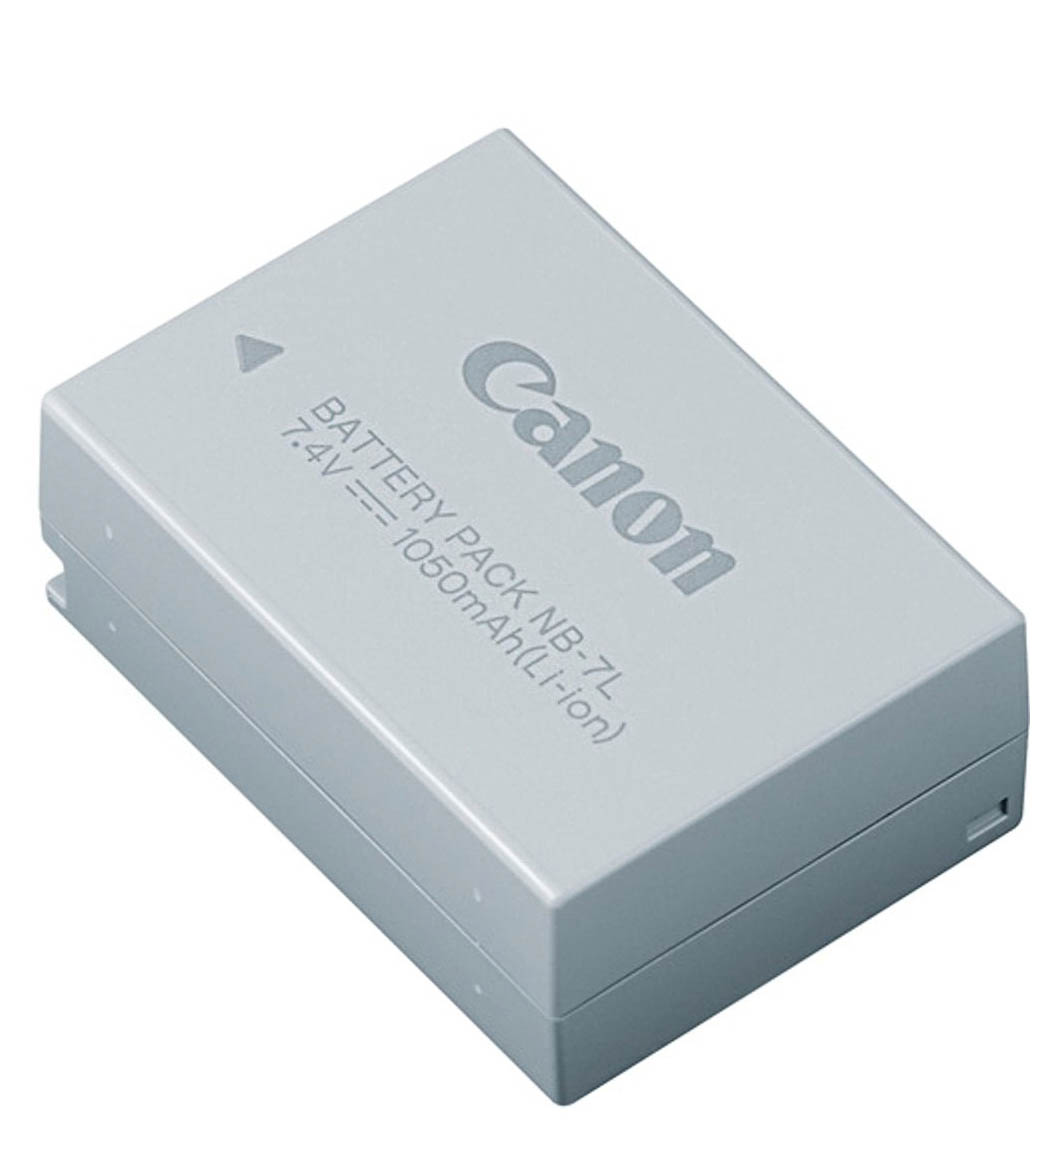 Canon NB-7L battery for G12 Camera